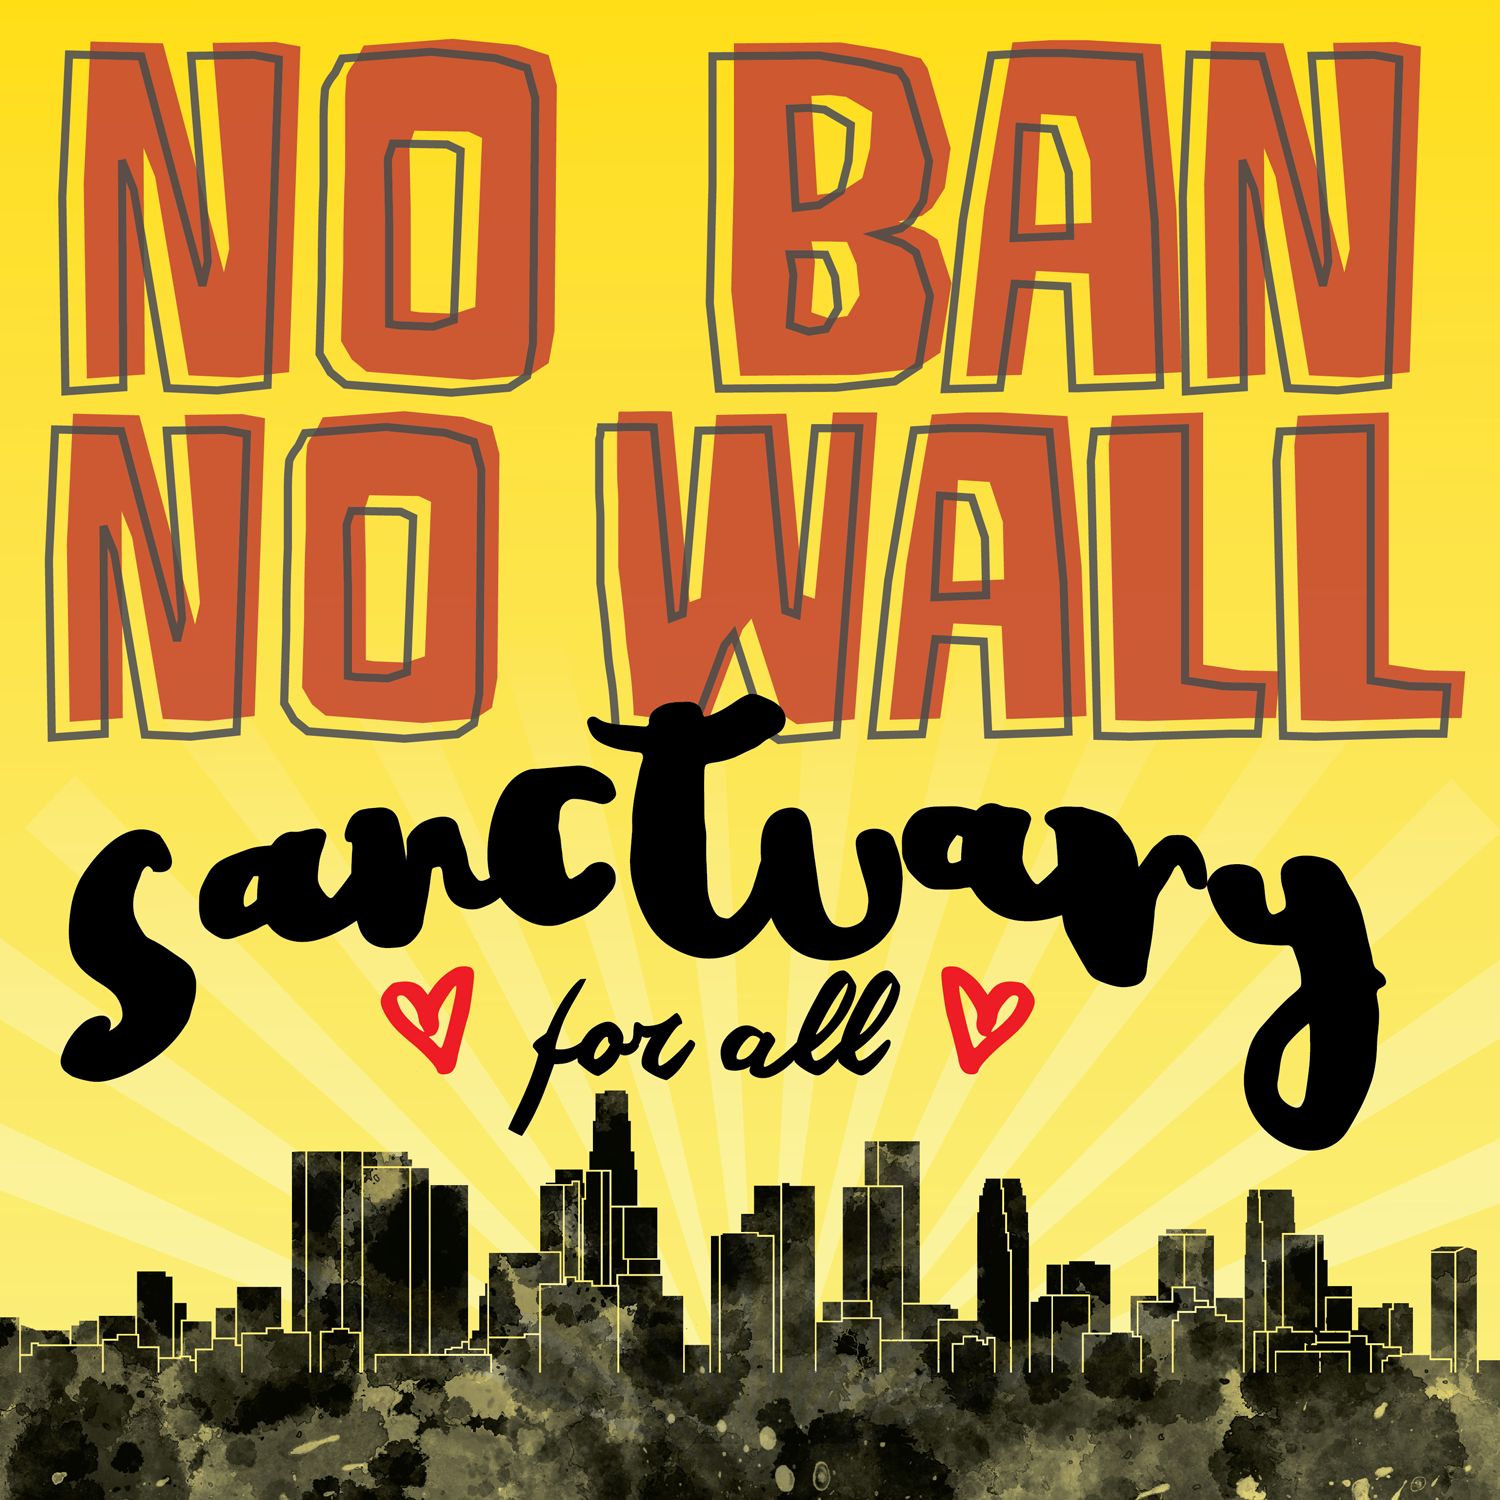 NOBAN_NOWALL_GRAPHIC.png